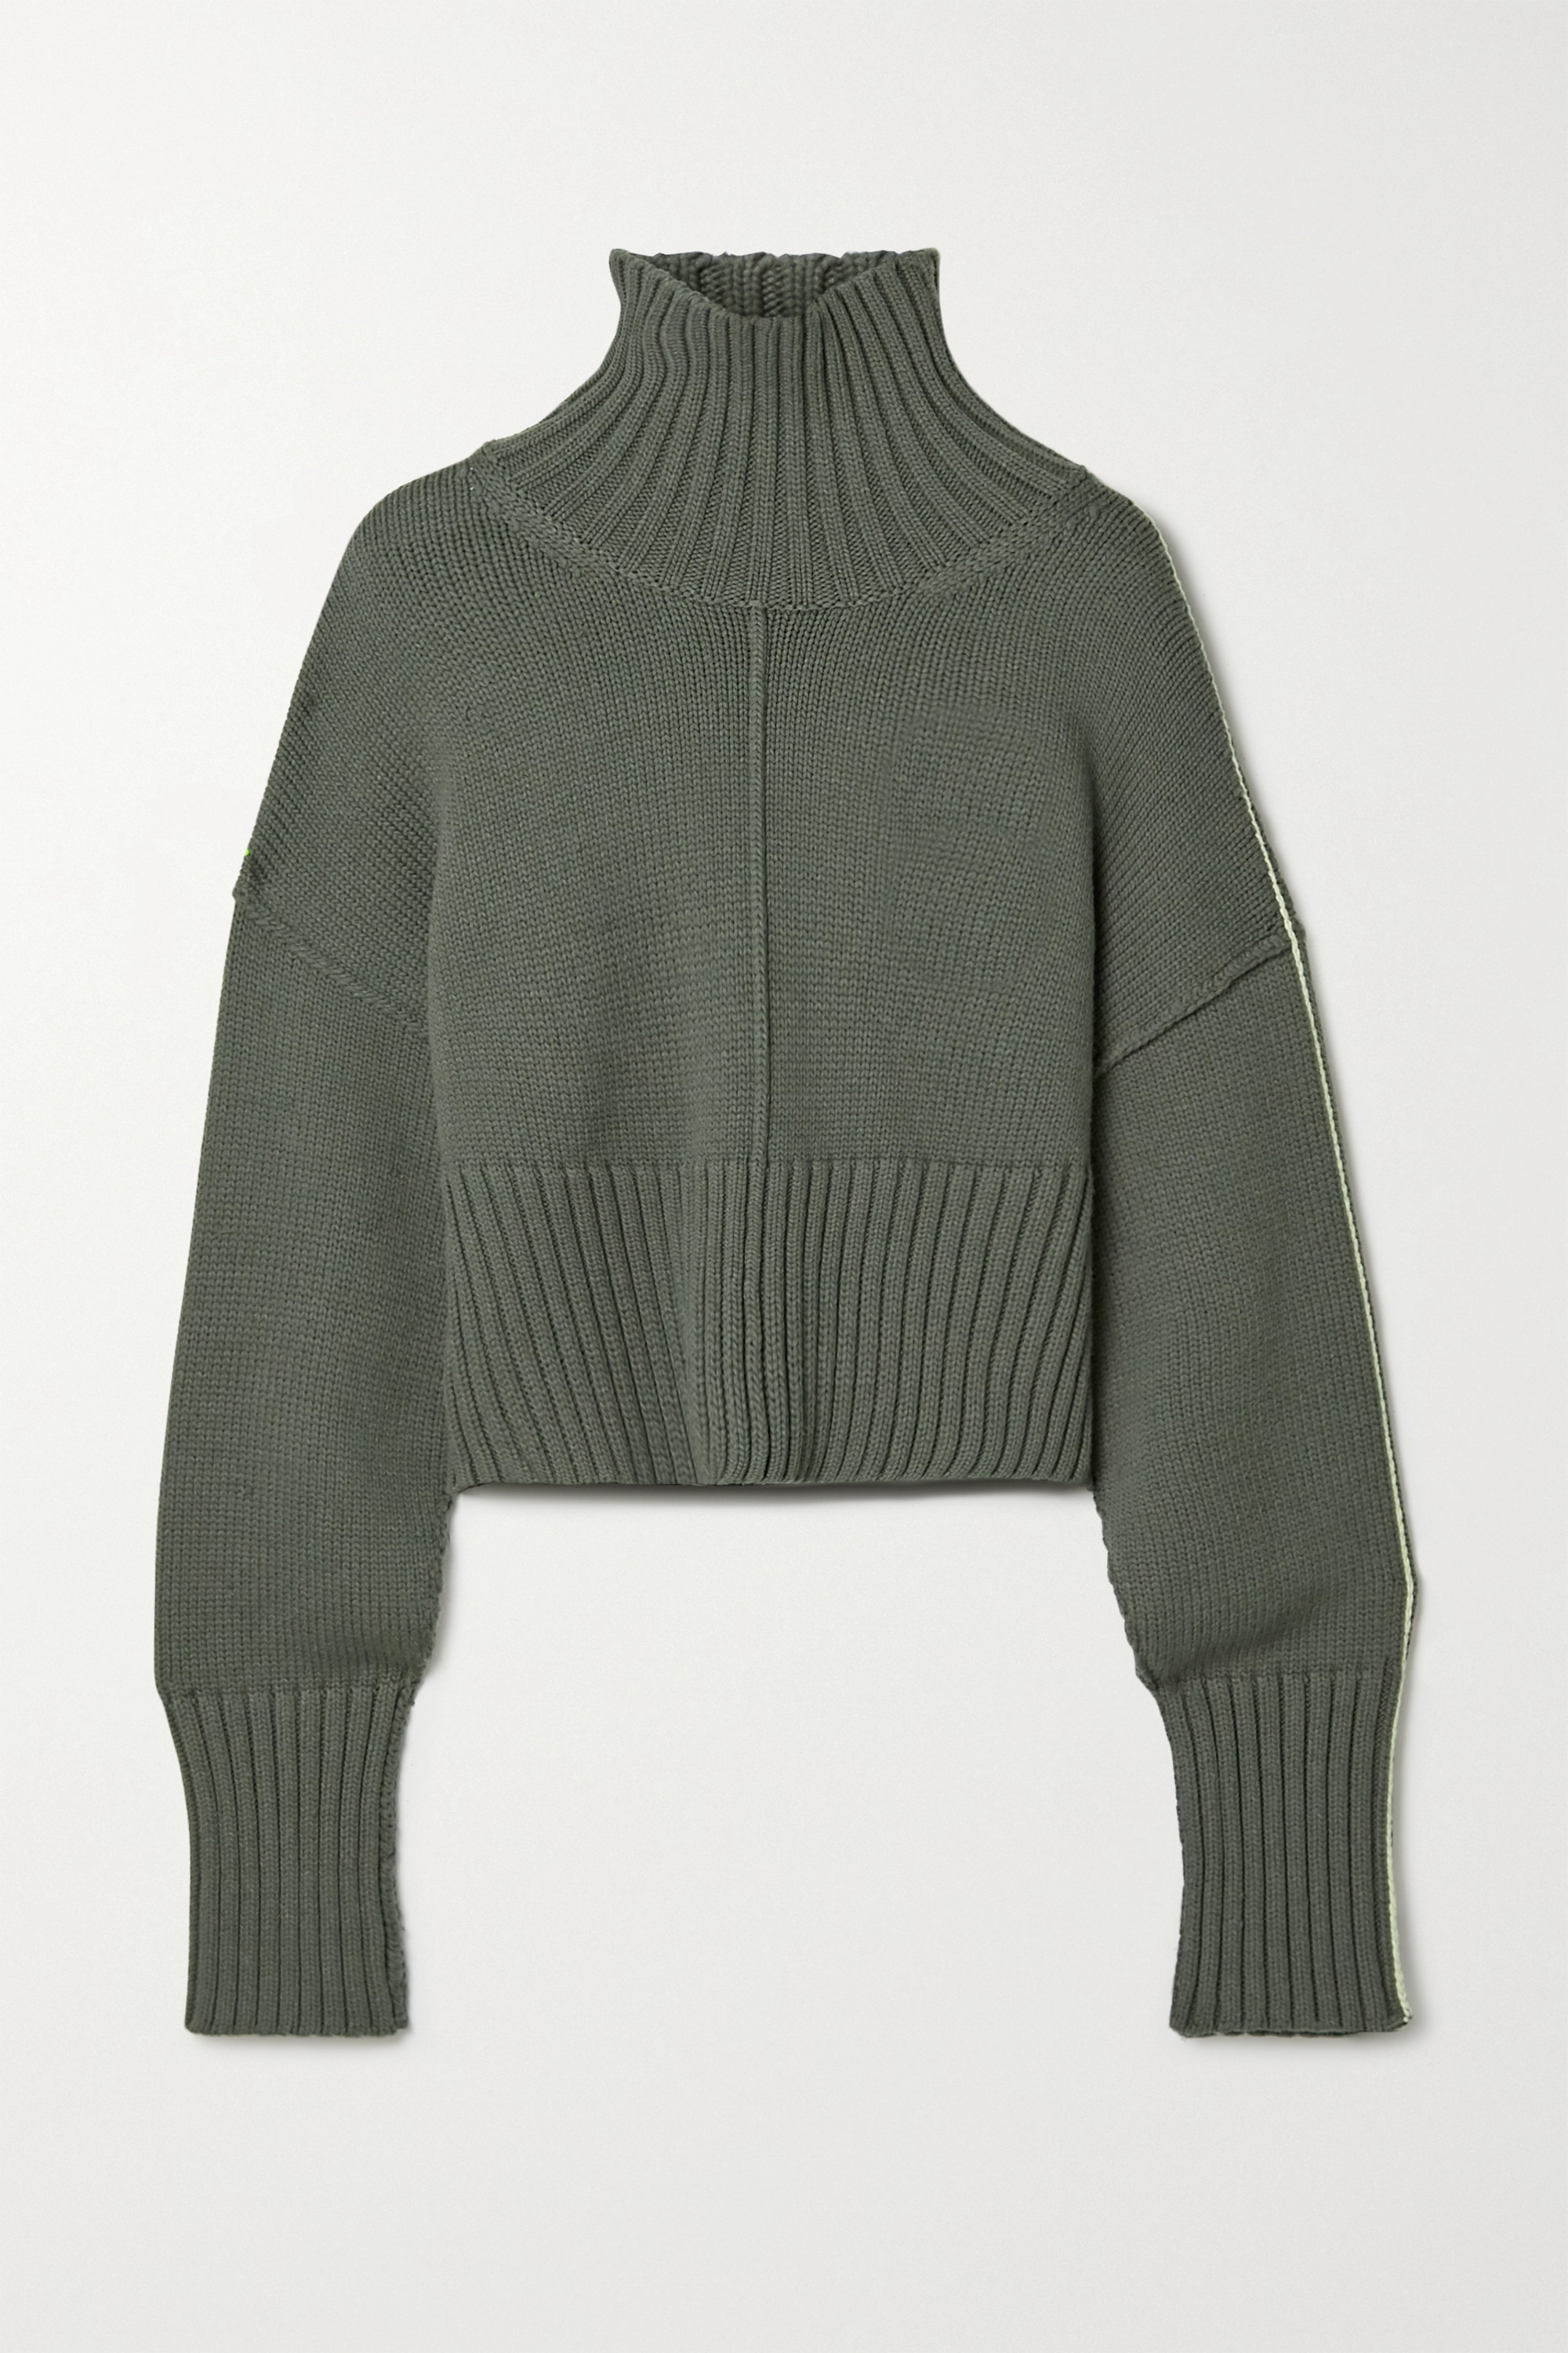 Anthracite Cropped Knitted Turtleneck Sweater | Peter Do